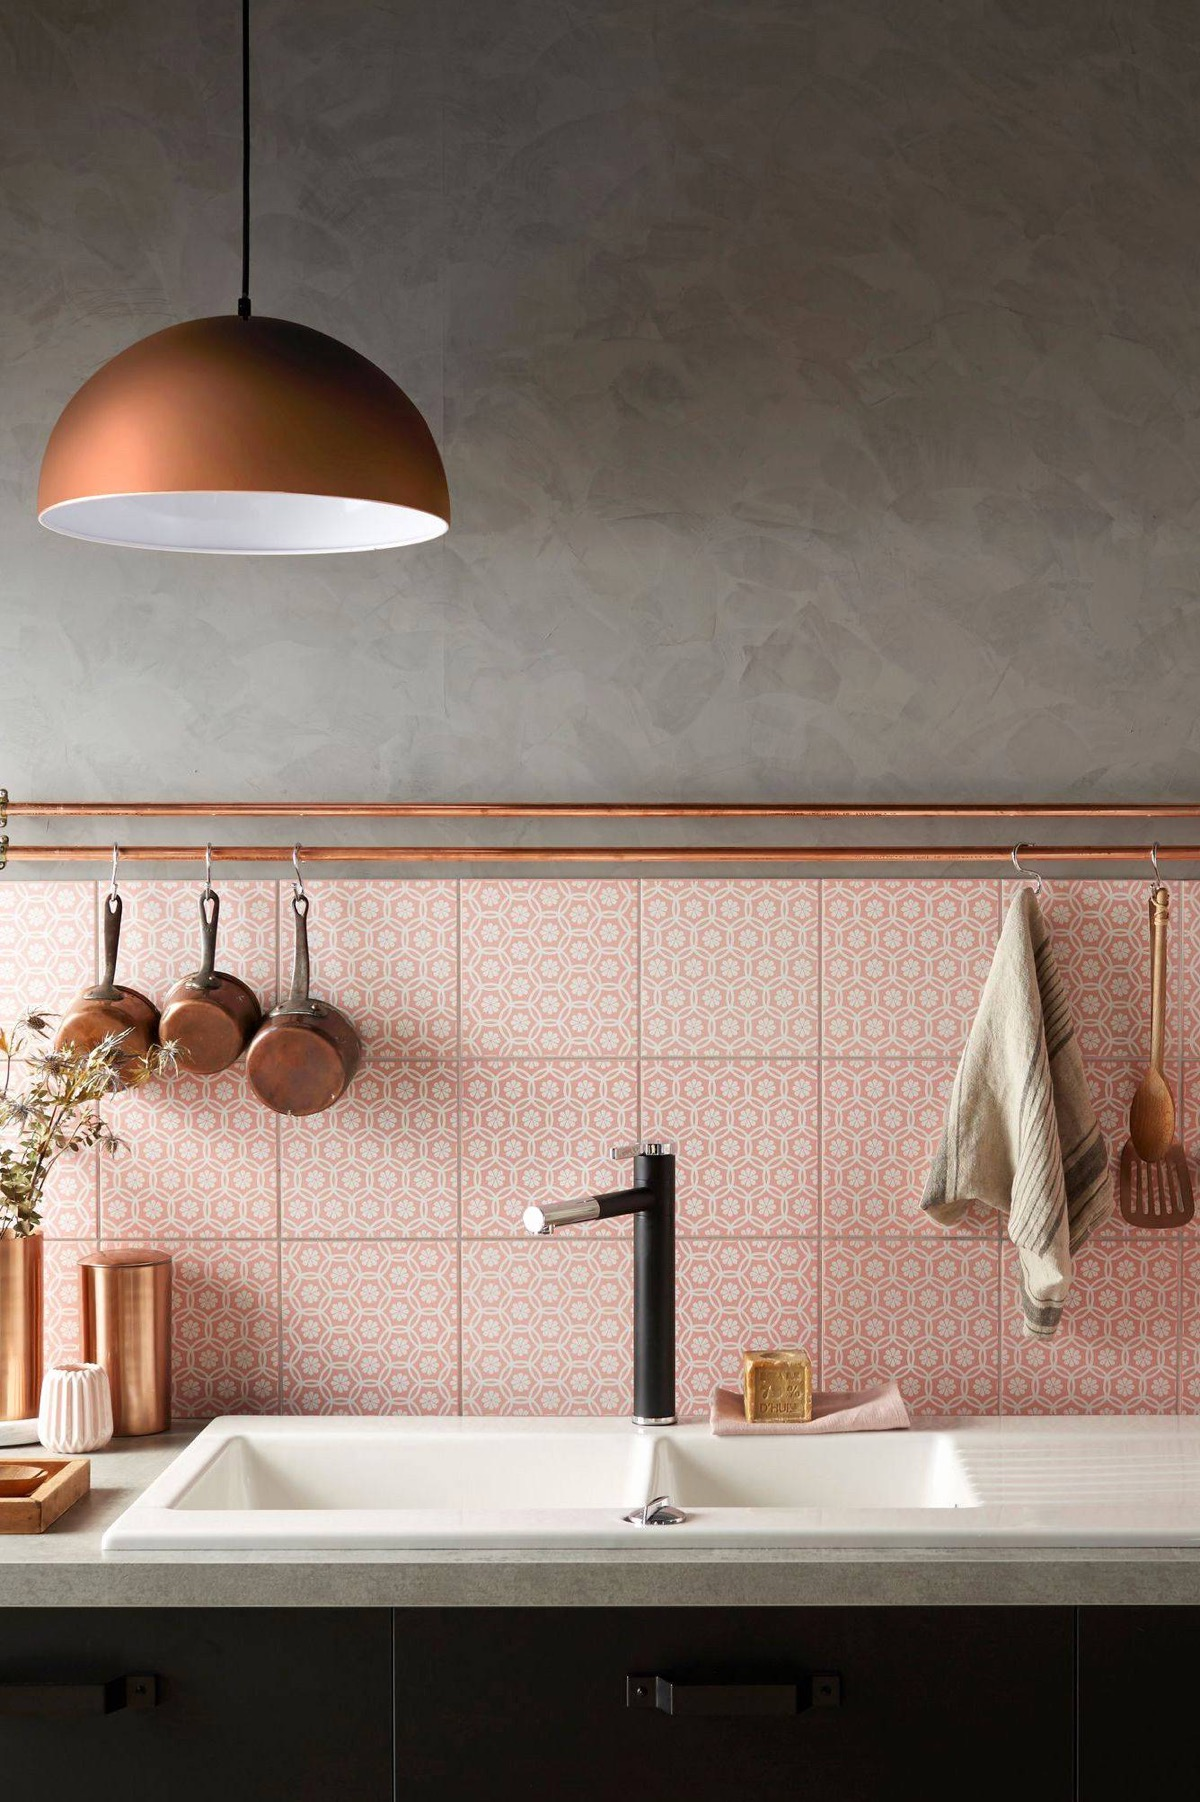 51 Inspirational Pink Kitchens With Tips & Accessories To Help You Design Yours images 28